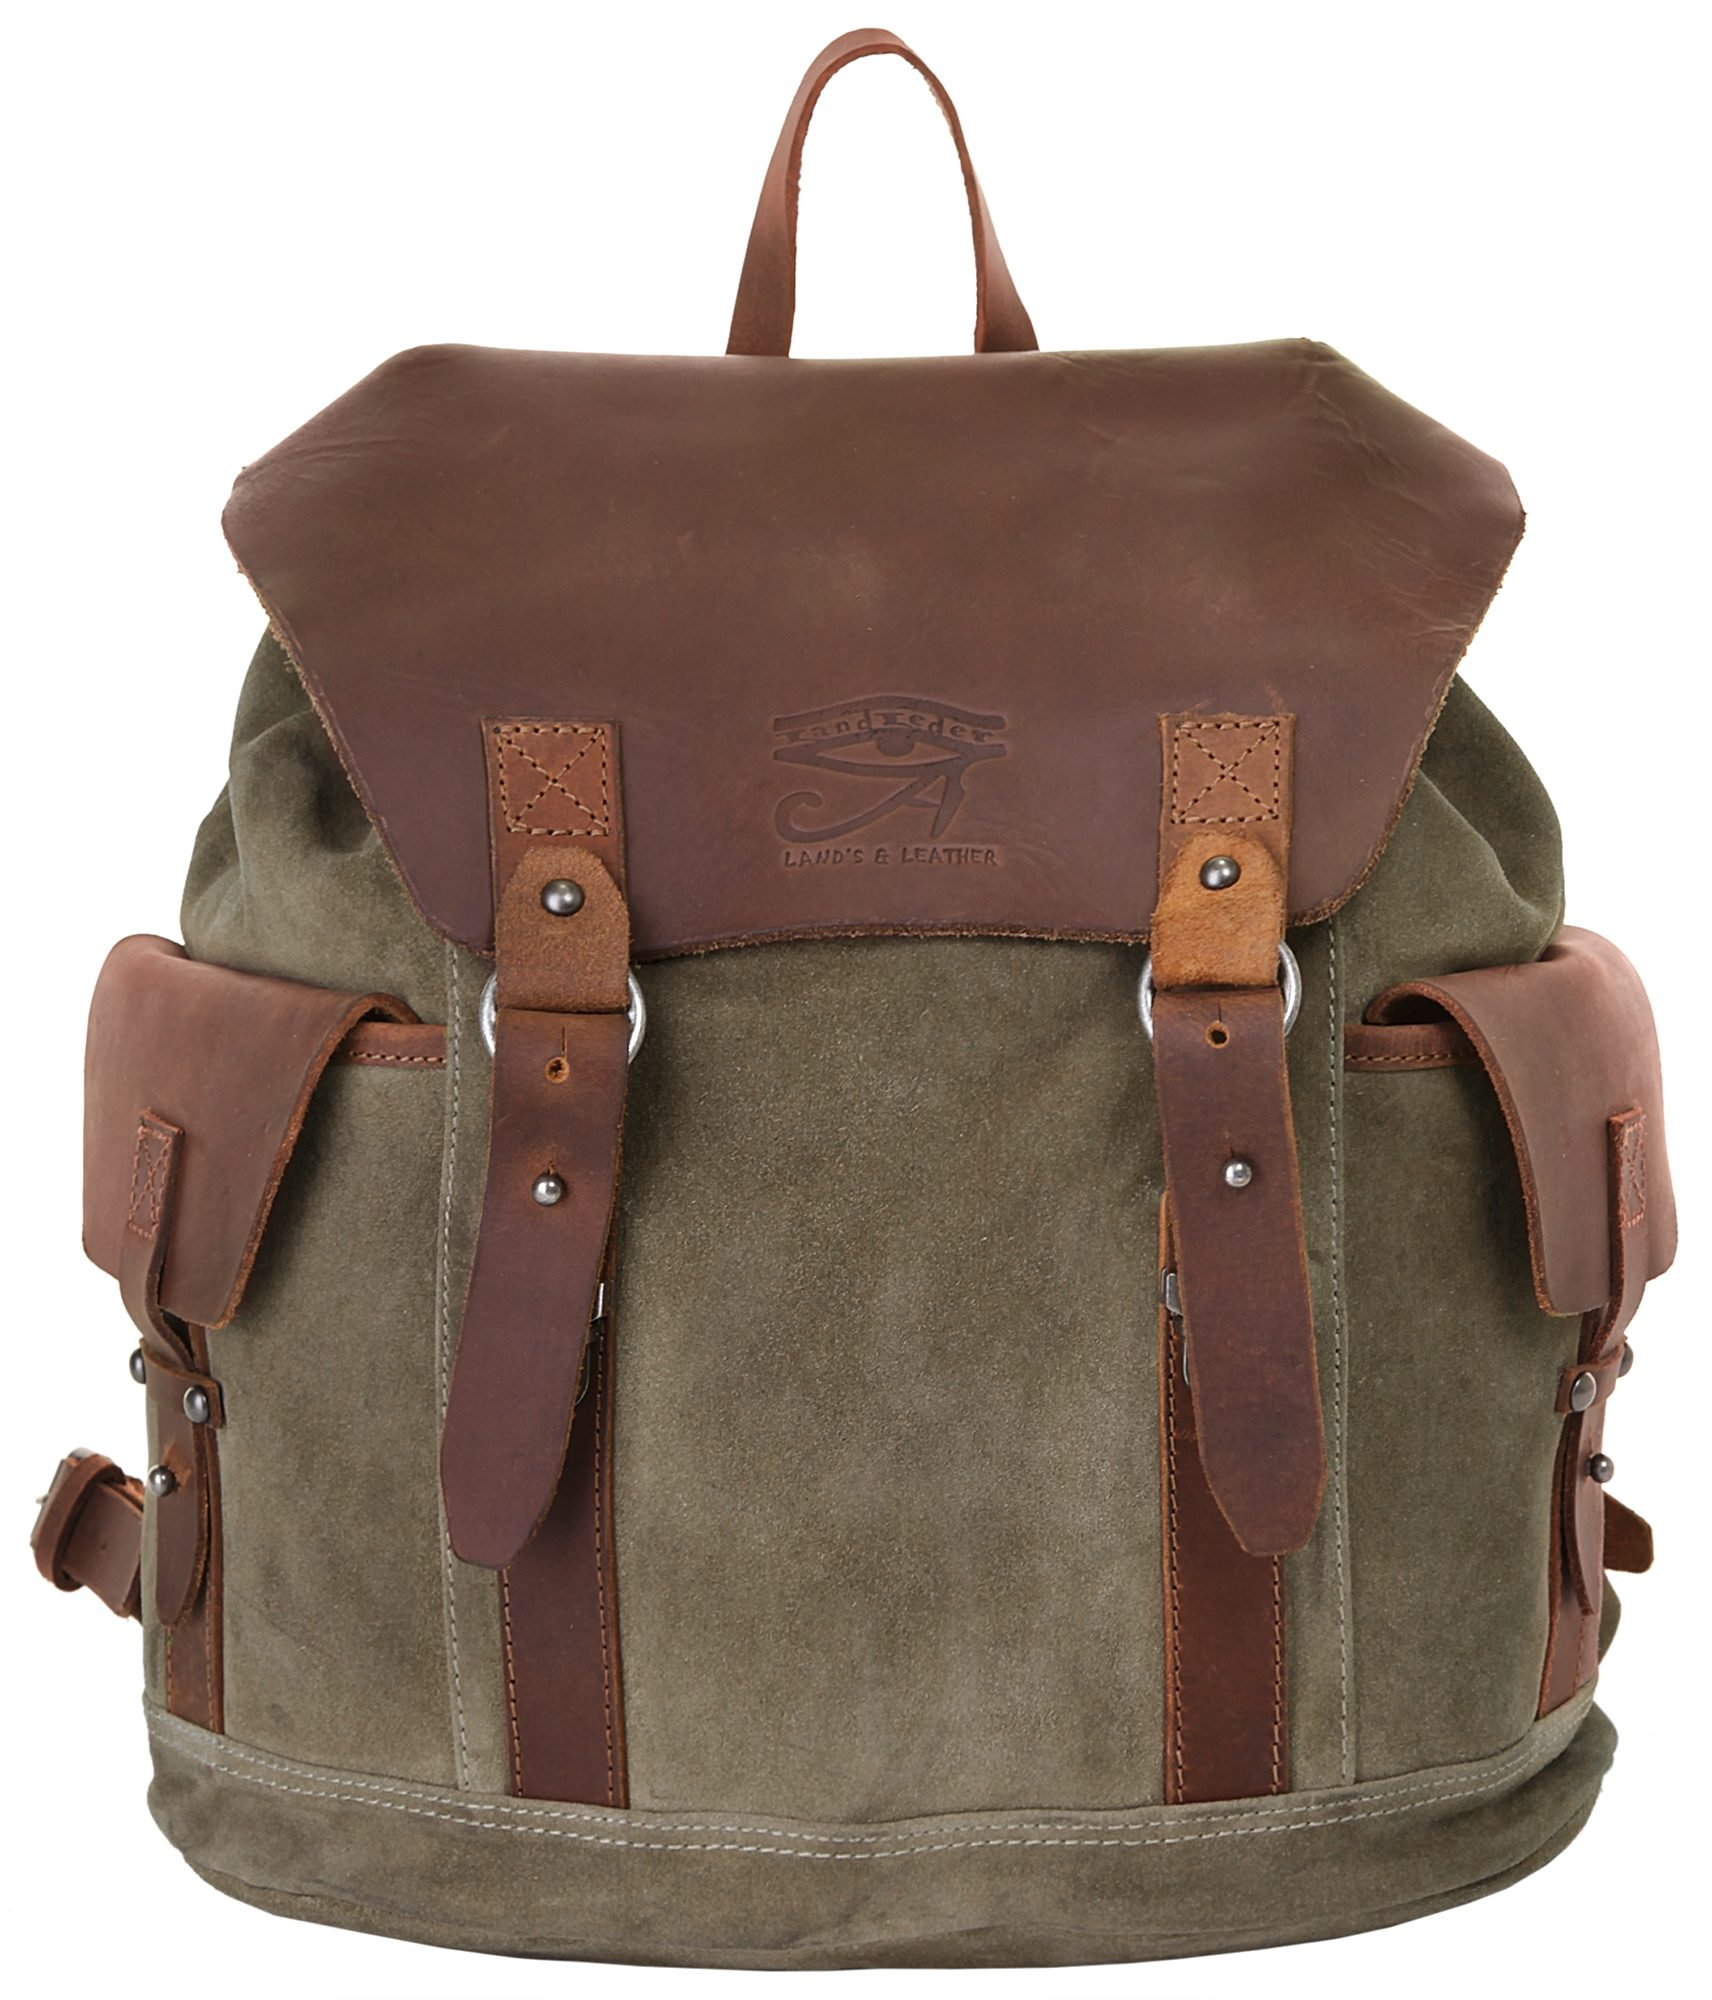 Landleder Leder Rucksack »Legend of Leather«